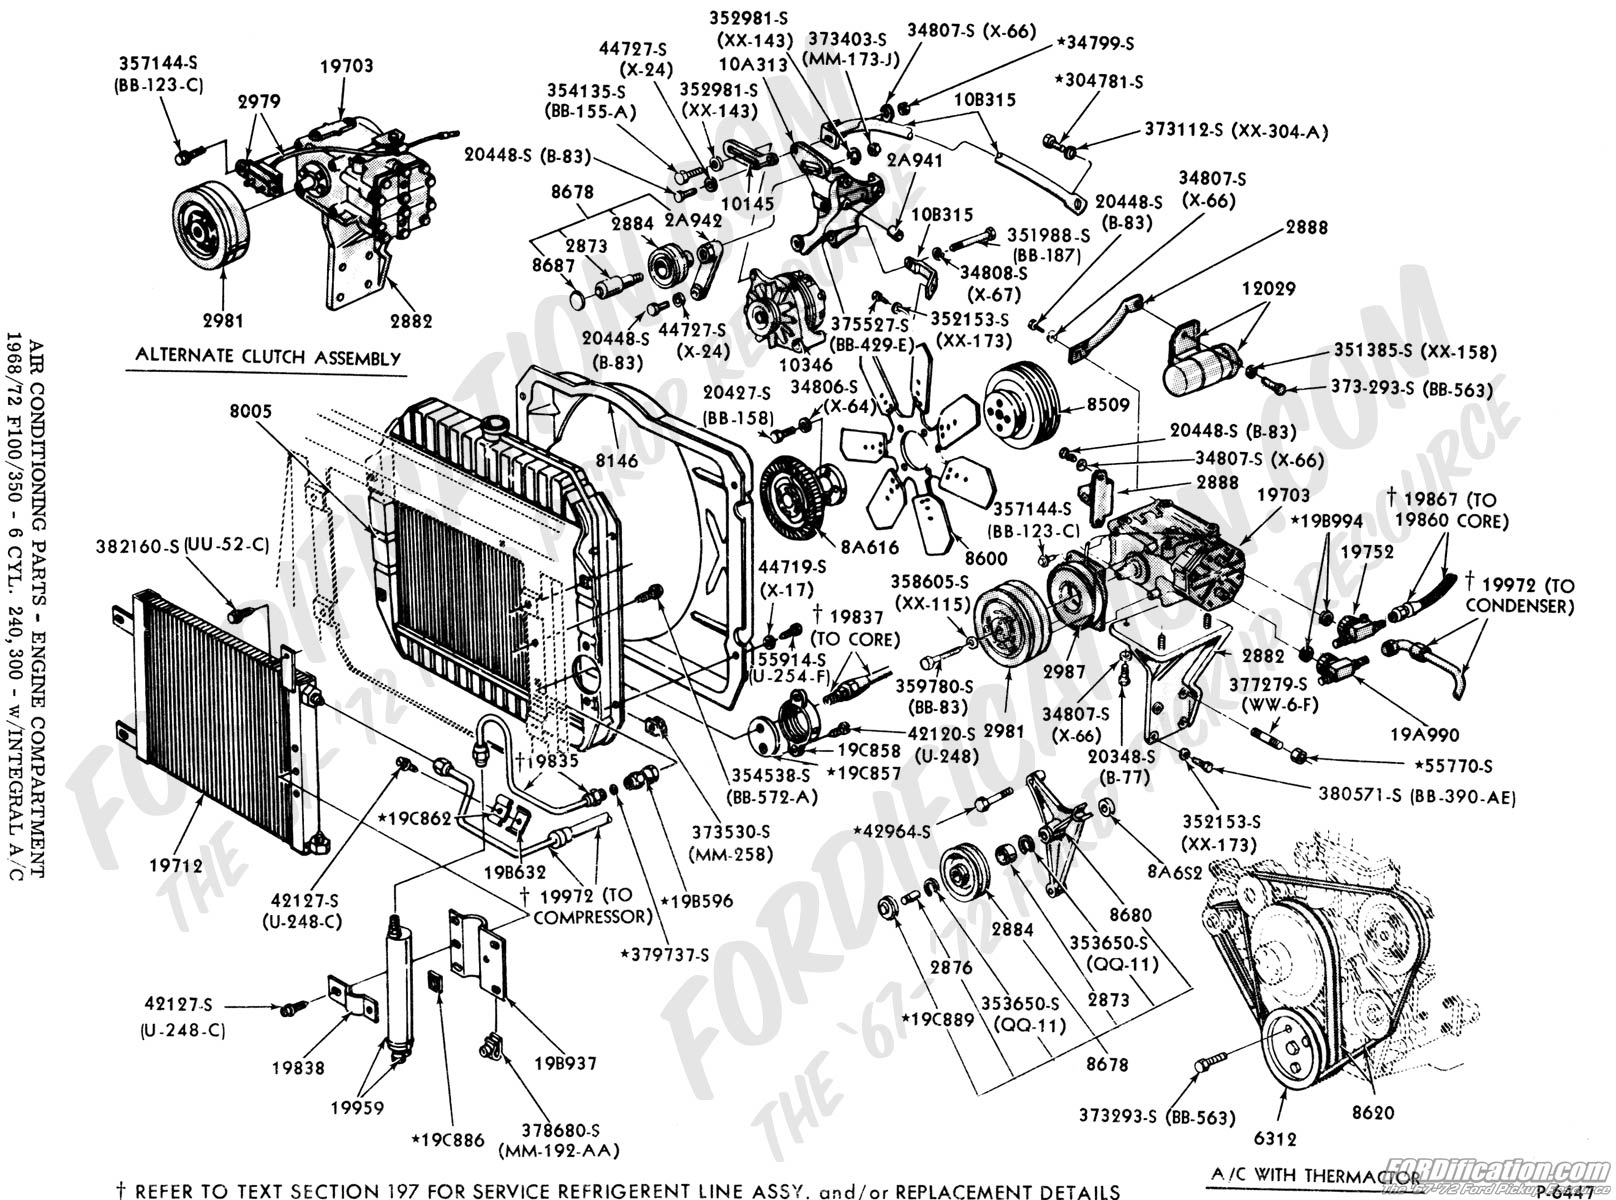 7 3 Powerstroke Firing Order Diagram. Engine. Wiring